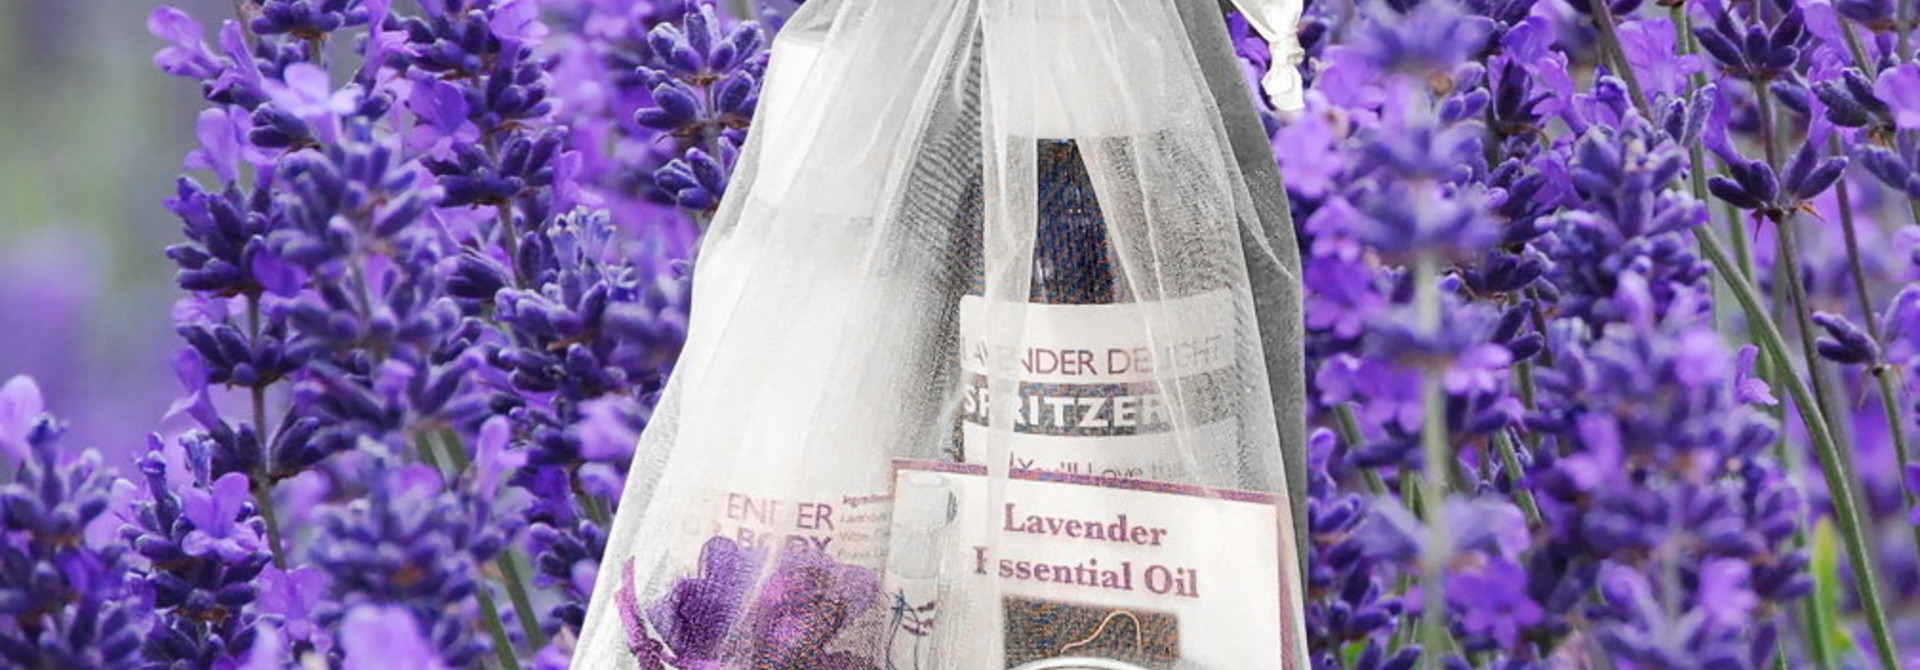 Lavender Gift Sets and certificates